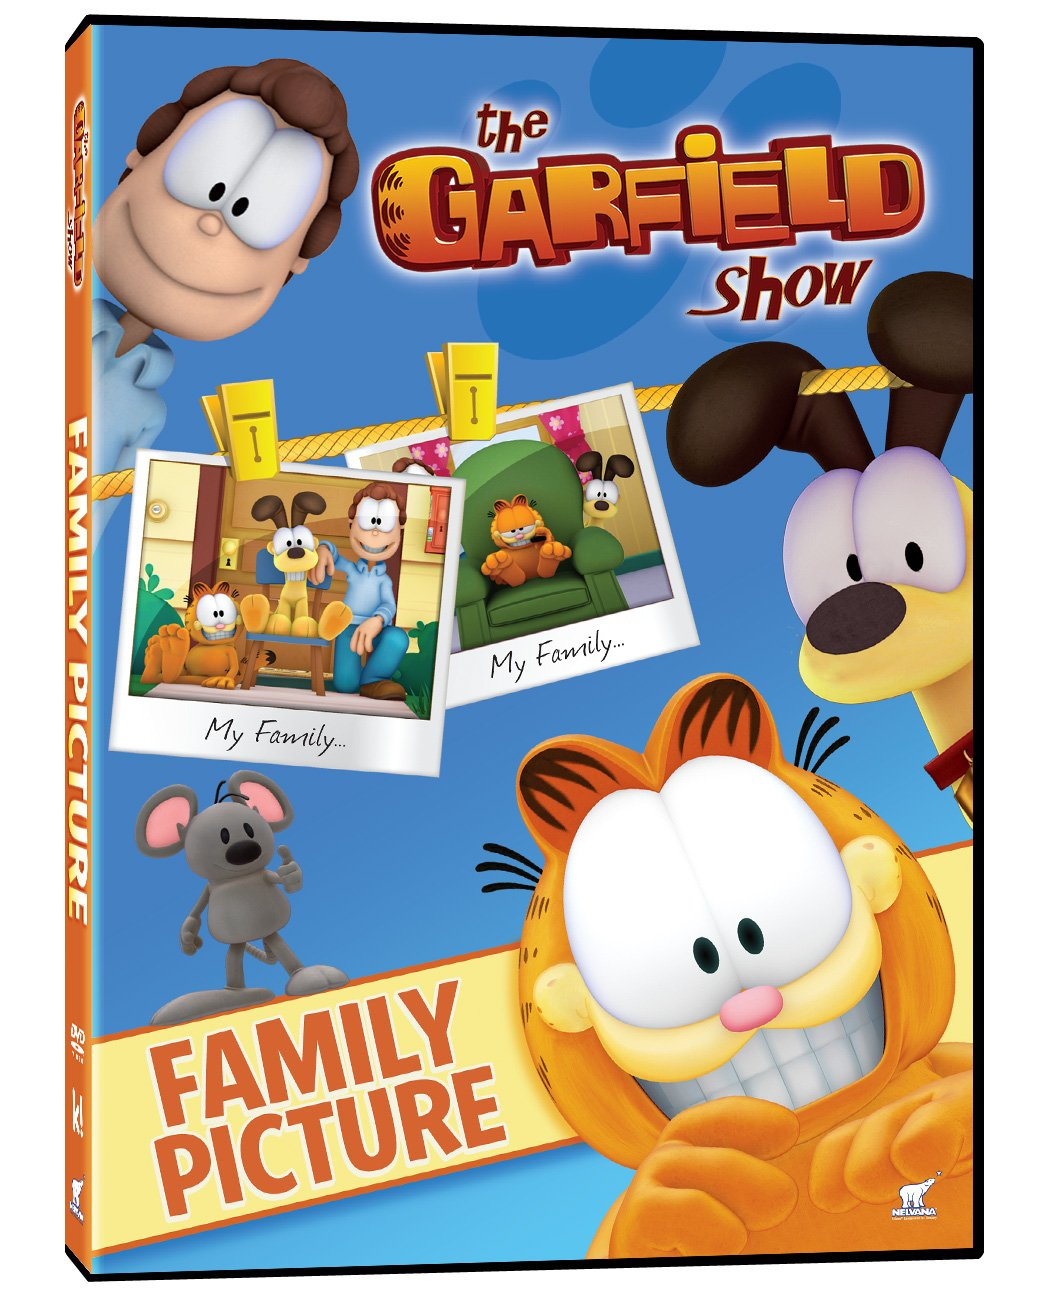 The Garfield Show - Family Picture (Bilingual) Frank Welker Greg Berg Philippe Vidal Phase 4